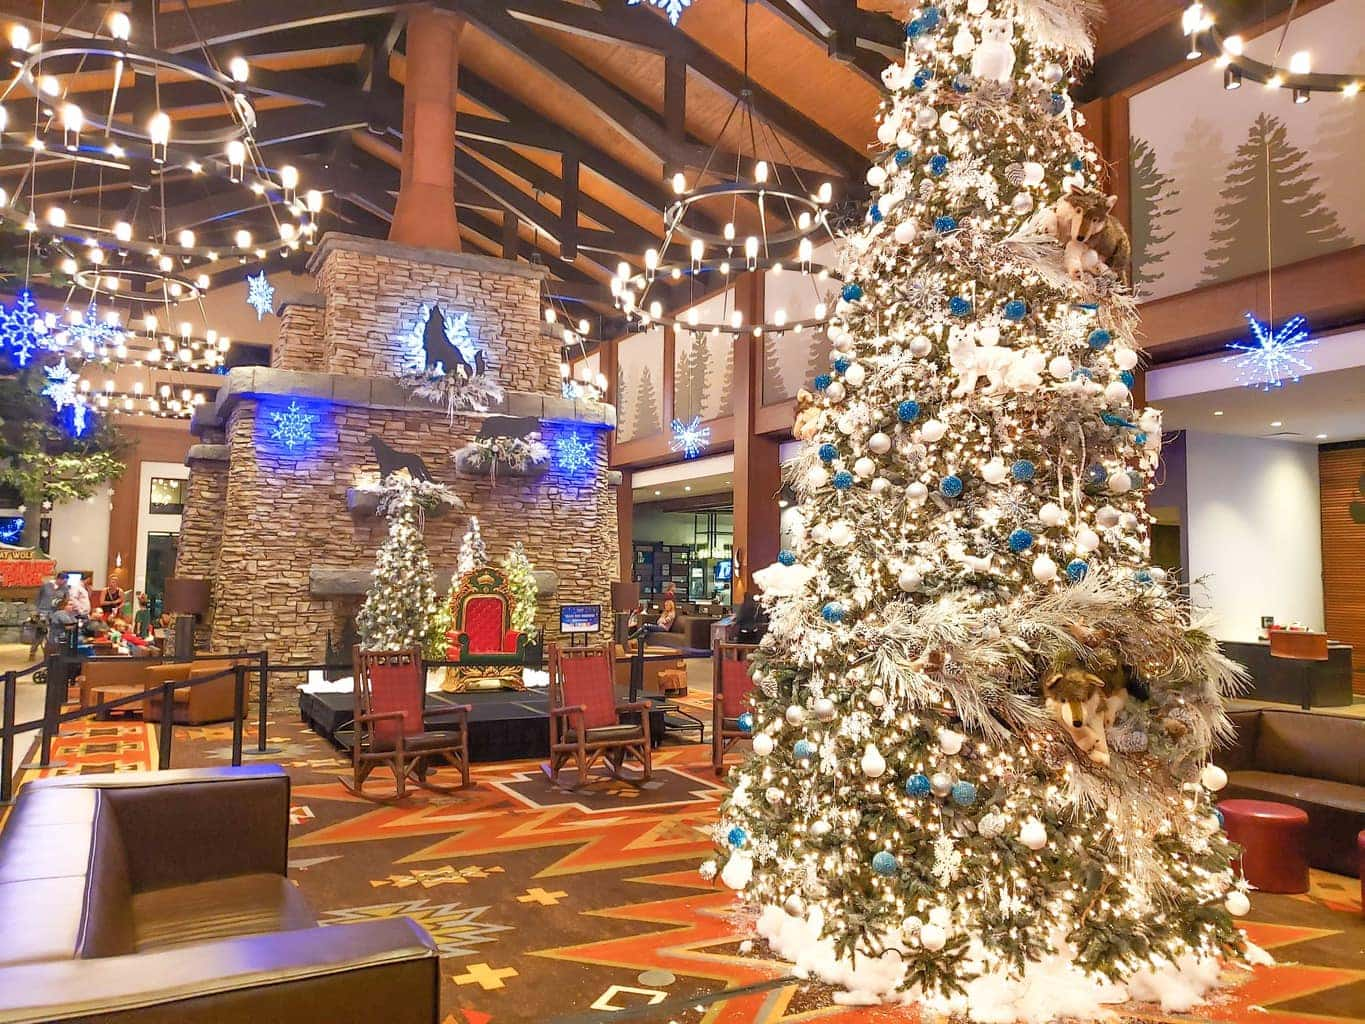 Christmas at Great Wolf Lodge - If you've been searching for a place where you can literally enjoy everything under one roof, Great Wolf Lodge in Georgia is waiting for you to book your reservation. It's no exaggeration that there was literally something for everyone to do, and there wasn't a moment of downtime to even worry about. We've compiled 5 great reasons you should stay at the Great Wolf Lodge.